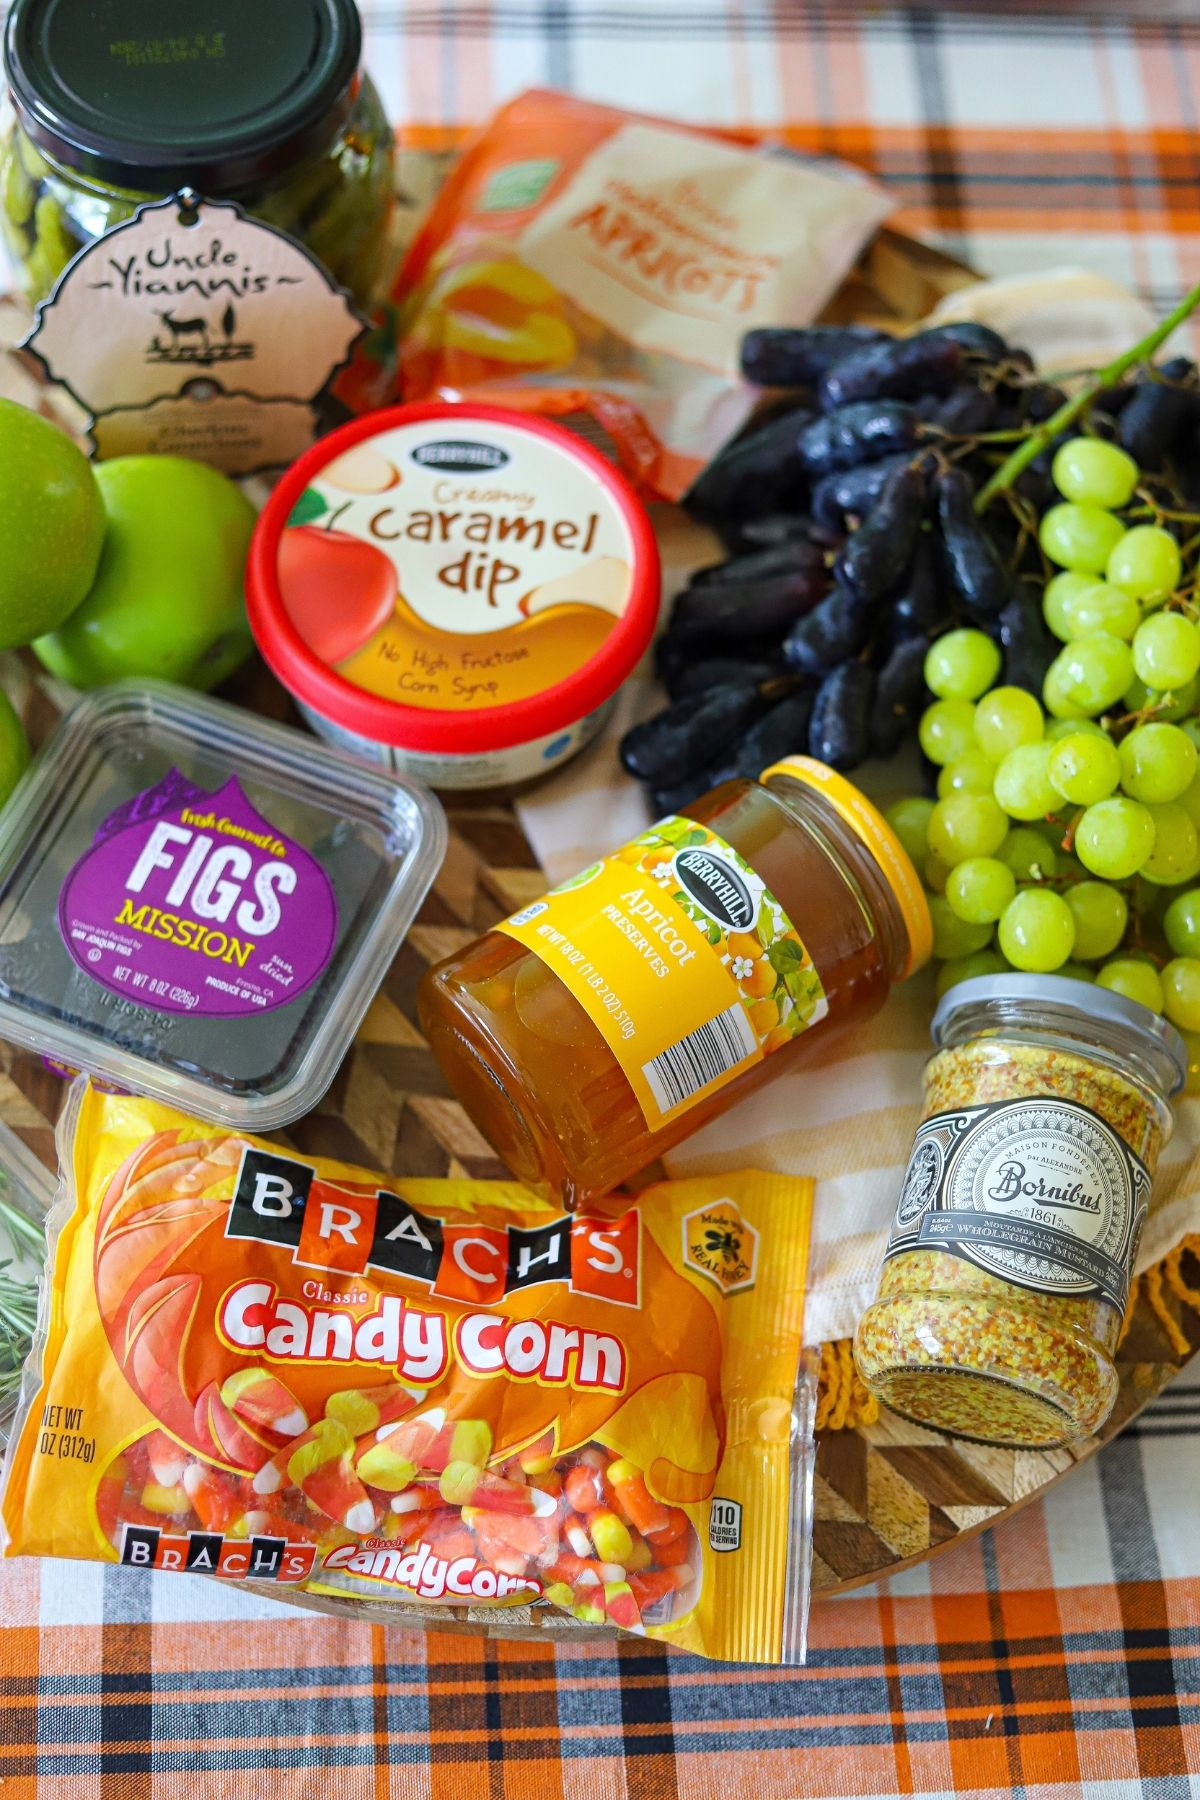 fruits, jams, and other items to use on a thanksgiving charcuterie board.